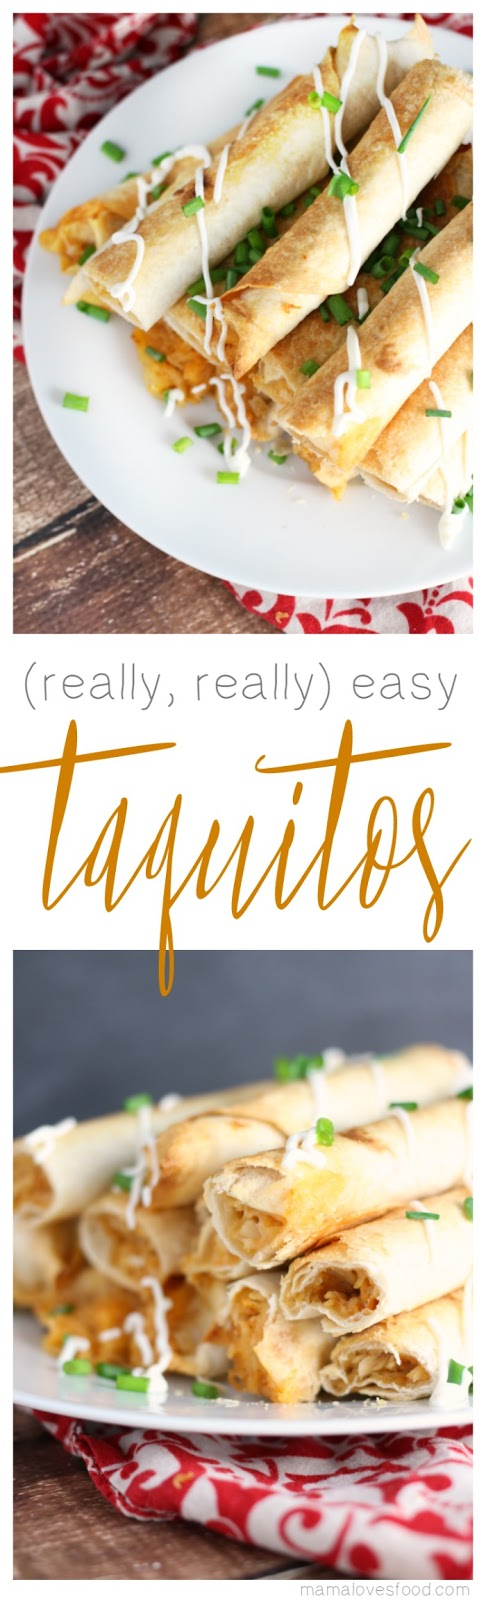 Easy Taquitos Recipe